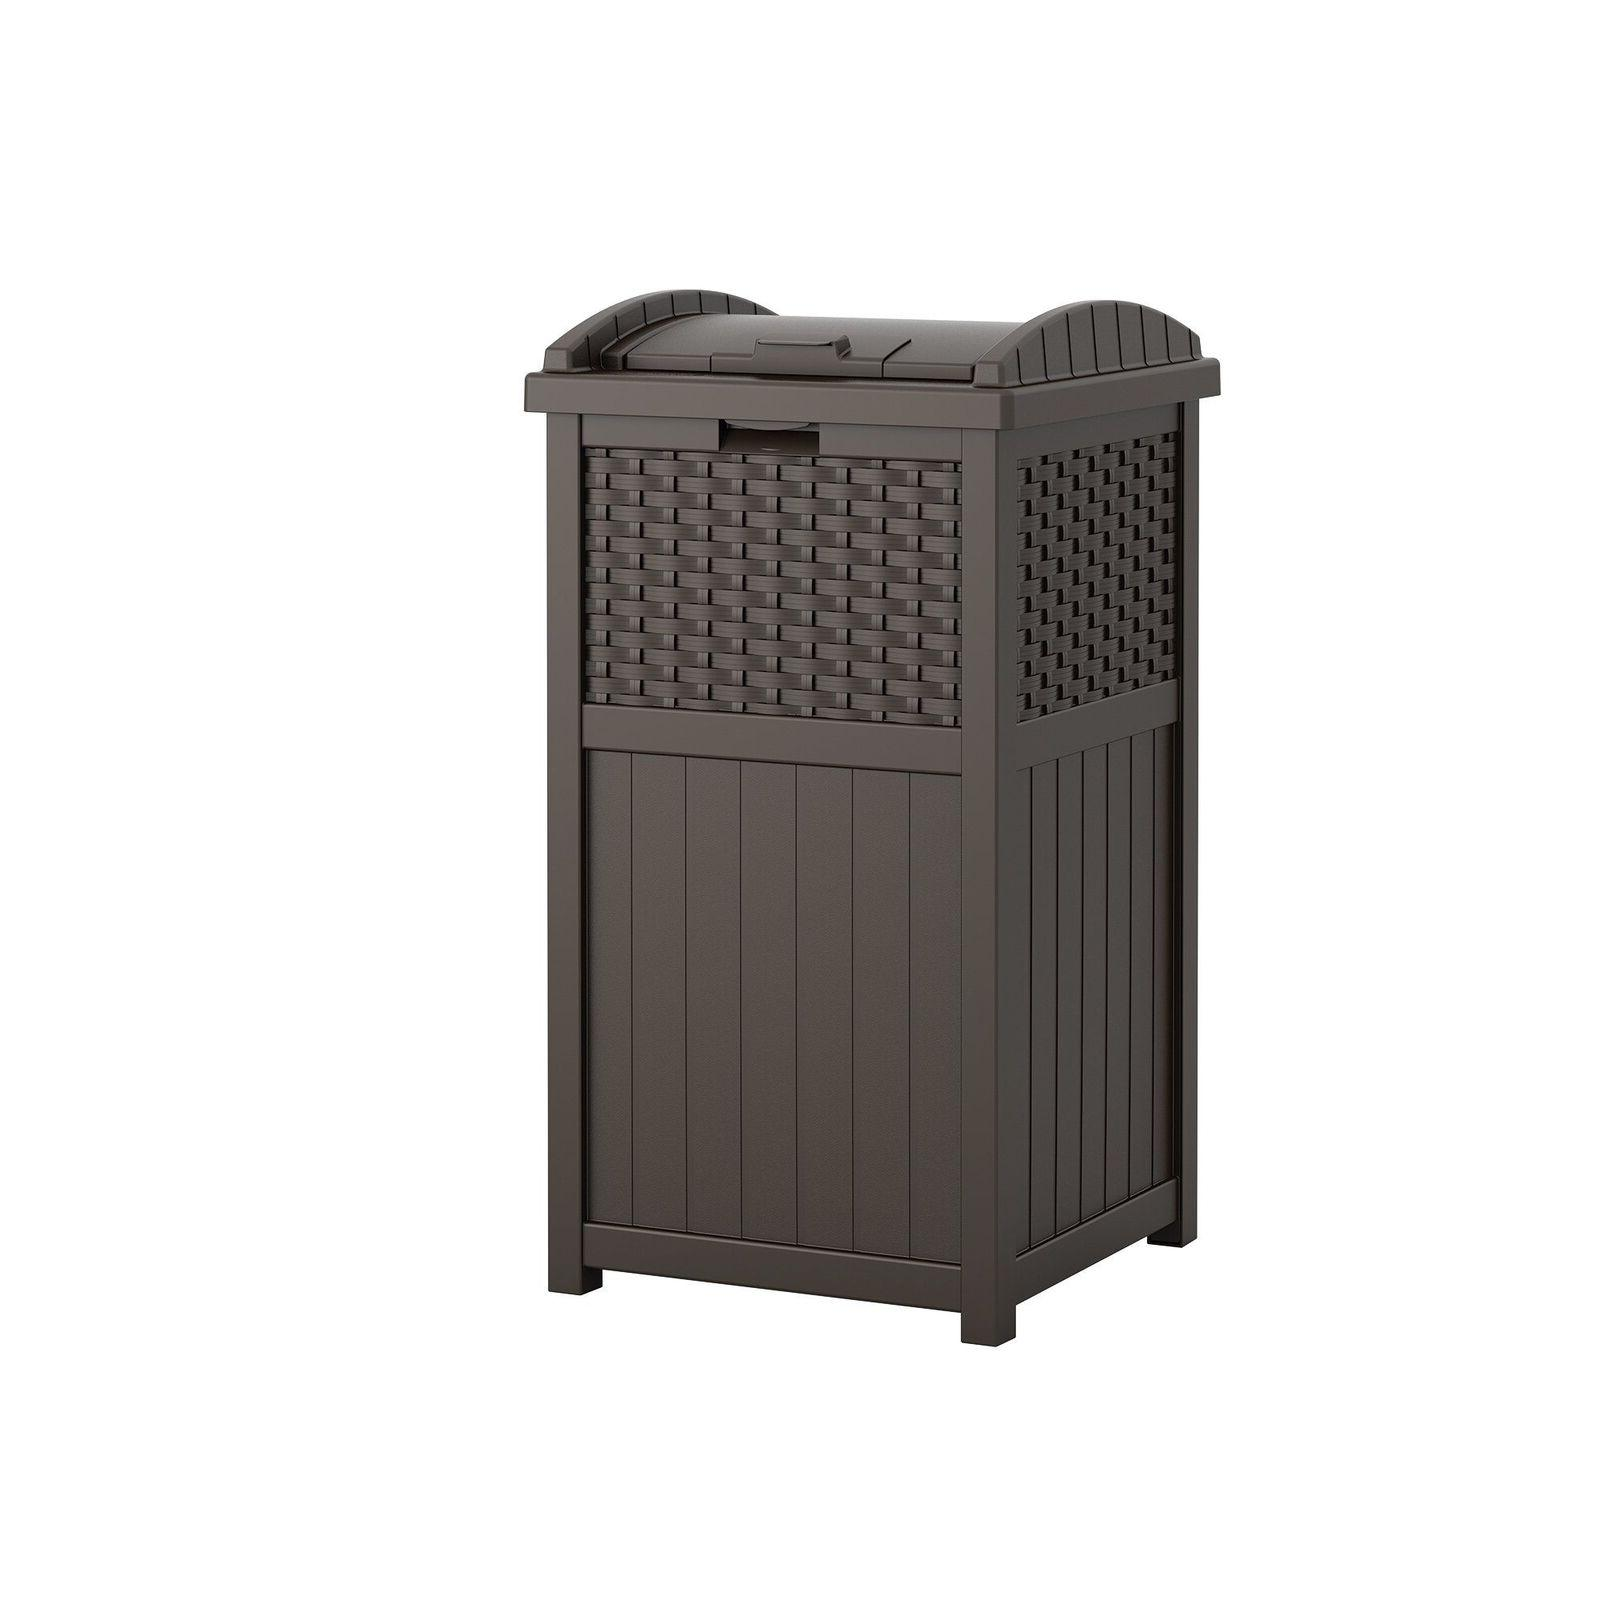 storage containers garbage wastebasket hideaway outdoor shed